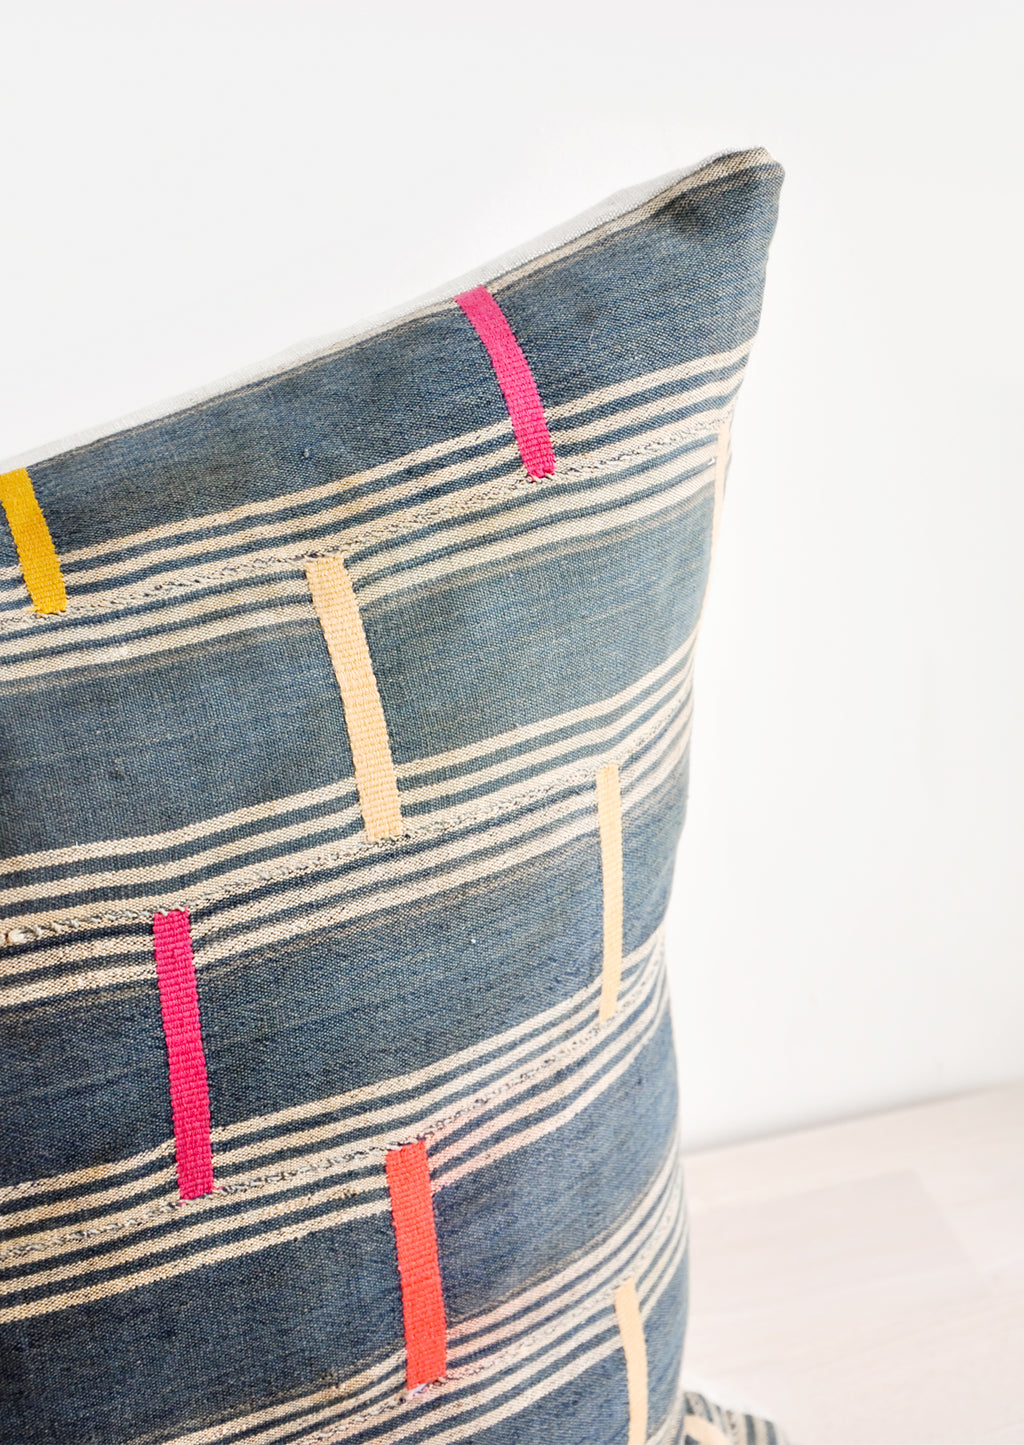 Vintage Embroidered Indigo Pillow